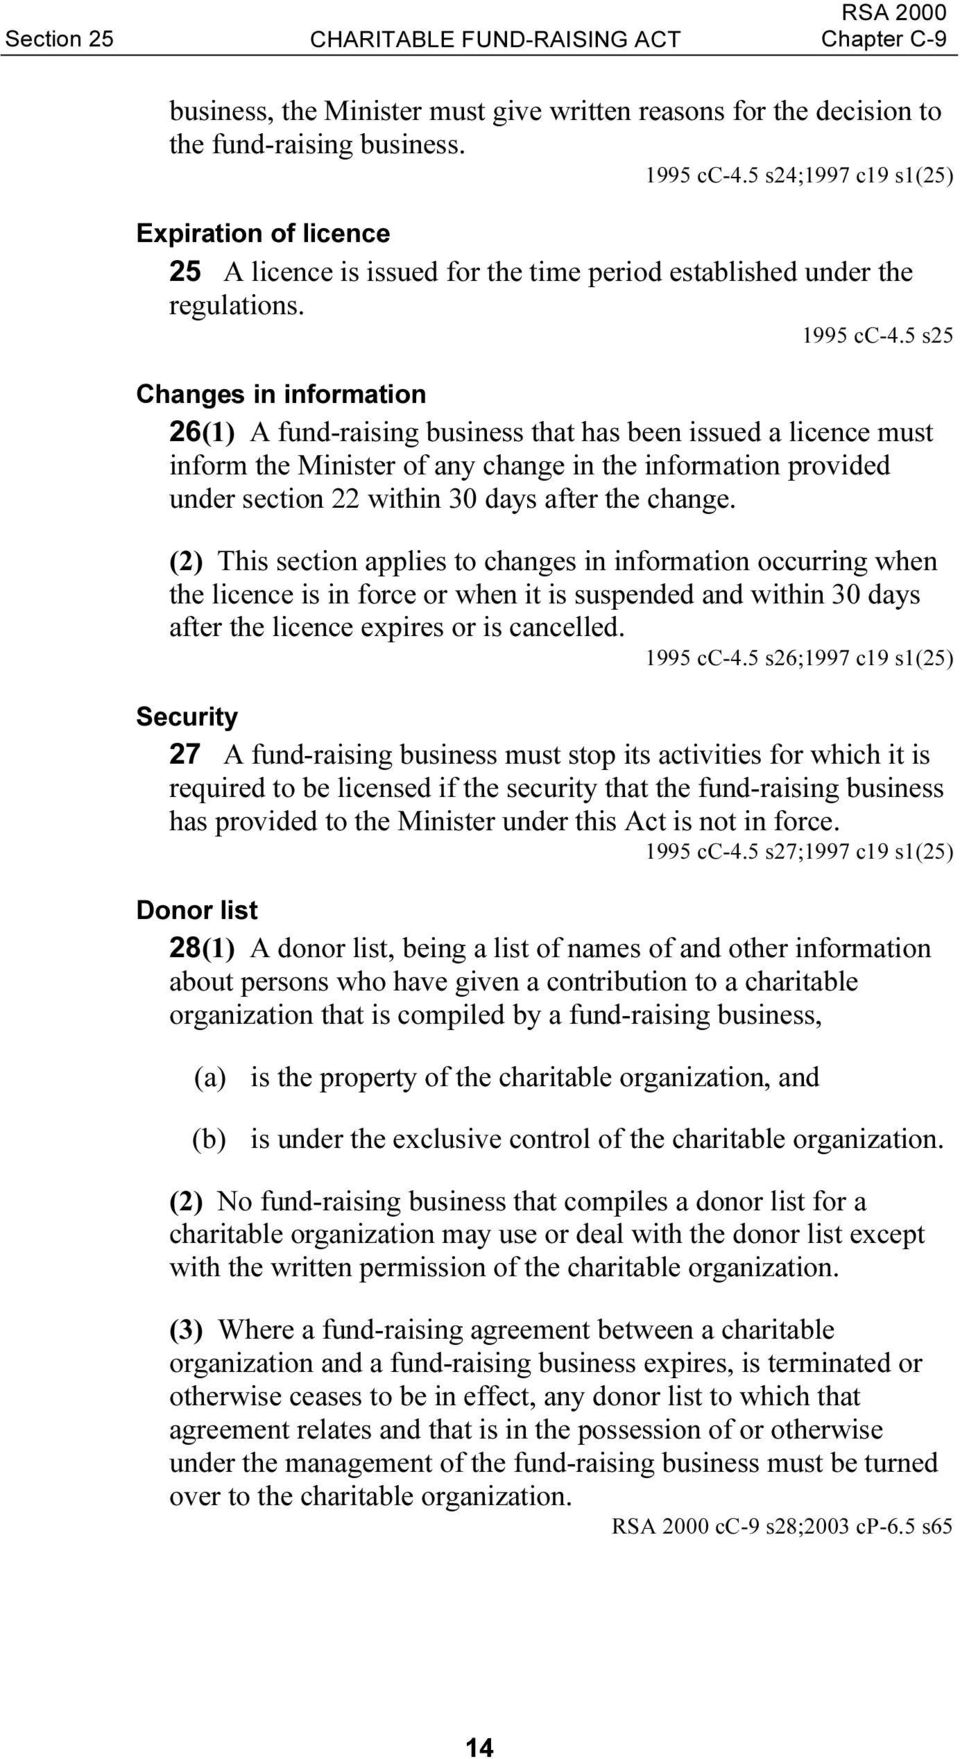 5 s25 Changes in information 26(1) A fund-raising business that has been issued a licence must inform the Minister of any change in the information provided under section 22 within 30 days after the